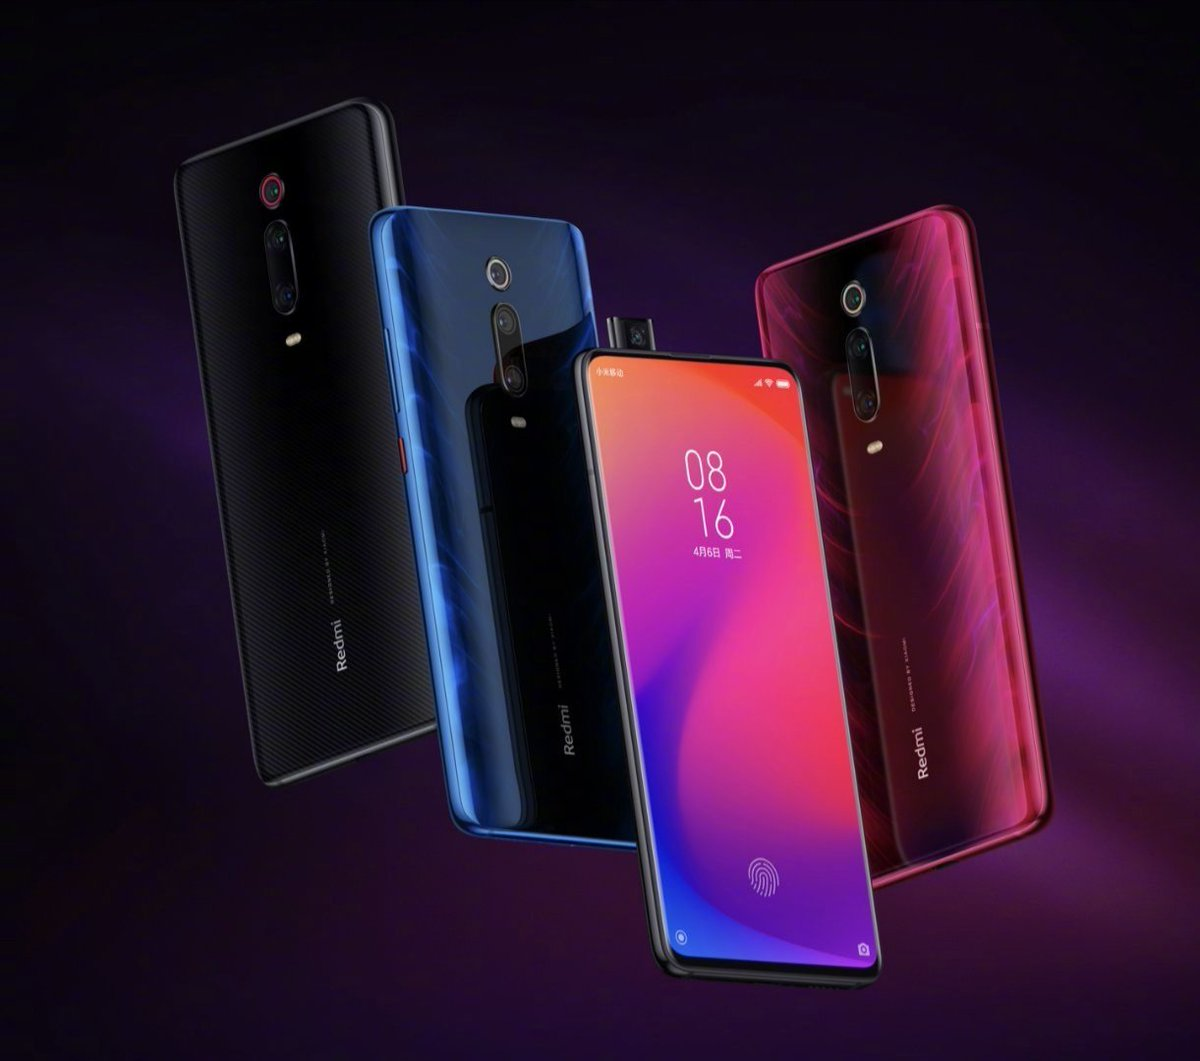 Image result for Redmi K20 vs Redmi K20 Pro: What's the Difference Between the Two?